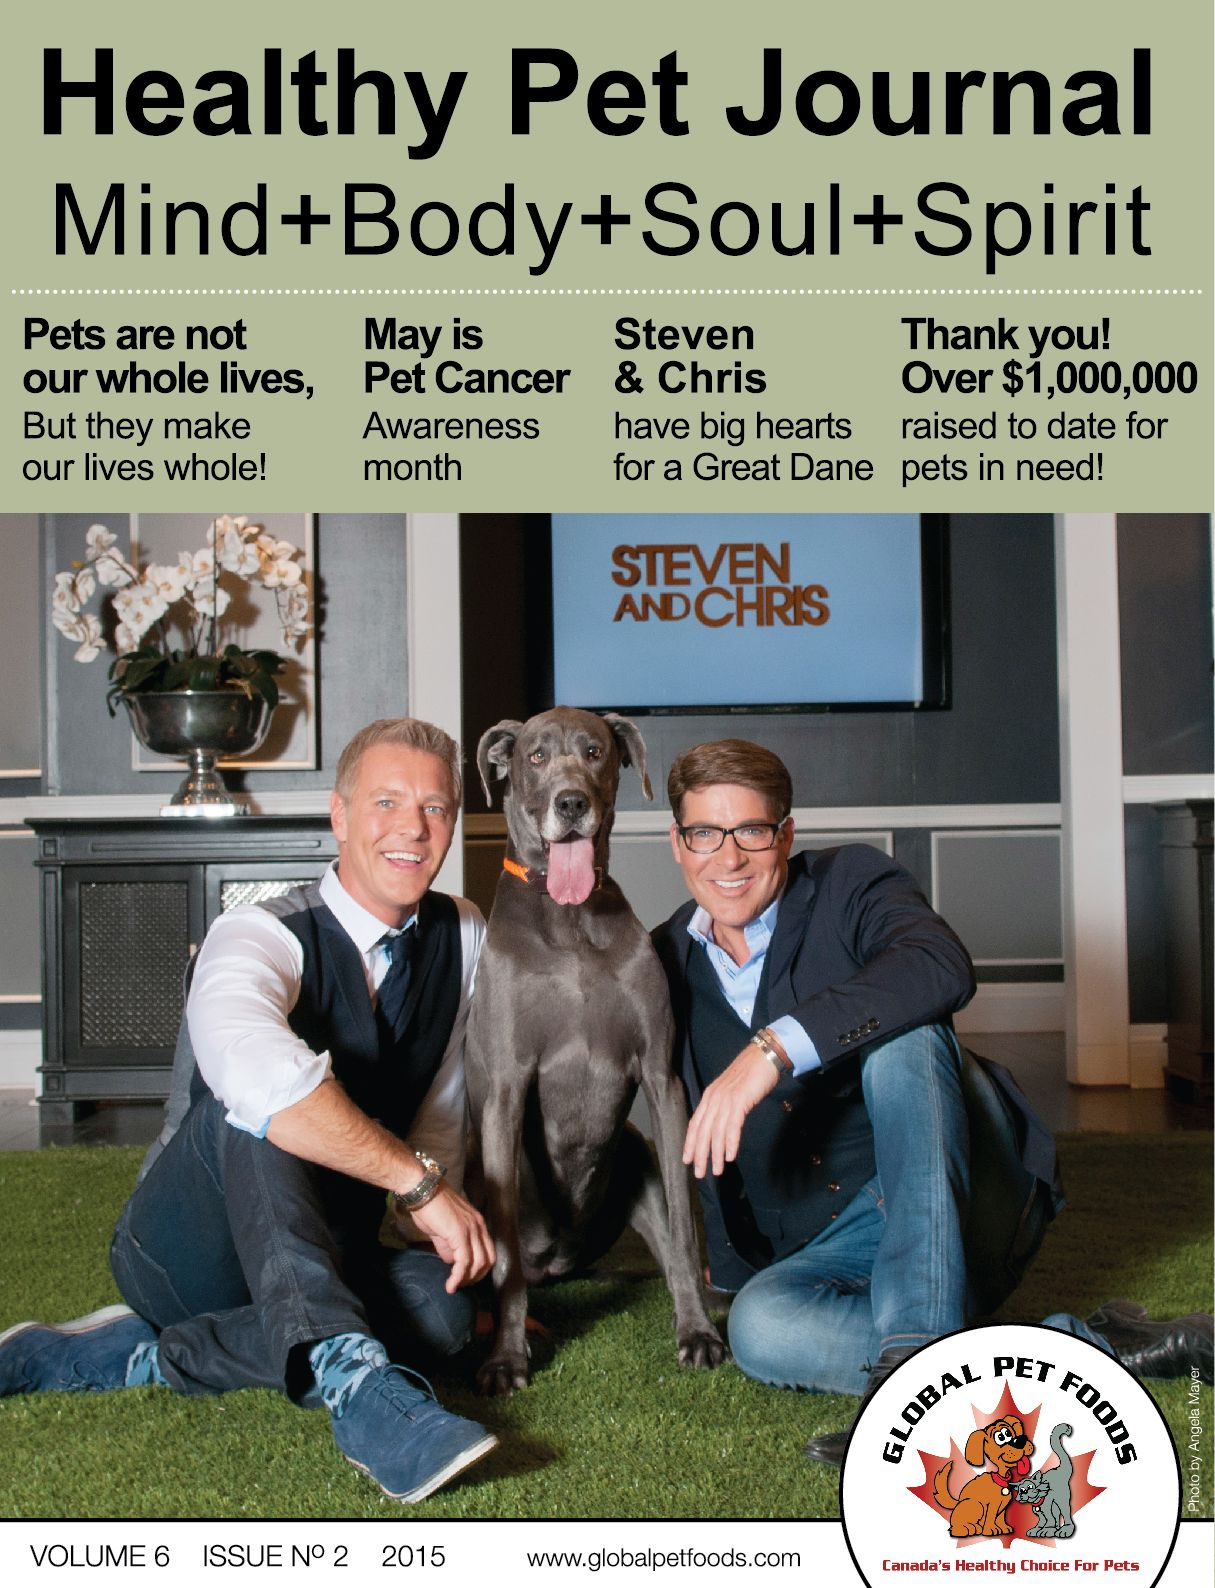 We Are Pleased To Feature Steven Sabados Chris Hyndman In The Spring Issue Of Our Healthy Pet Journal These Two Host A Lifestyl Healthy Pets Pet Cancer Pets